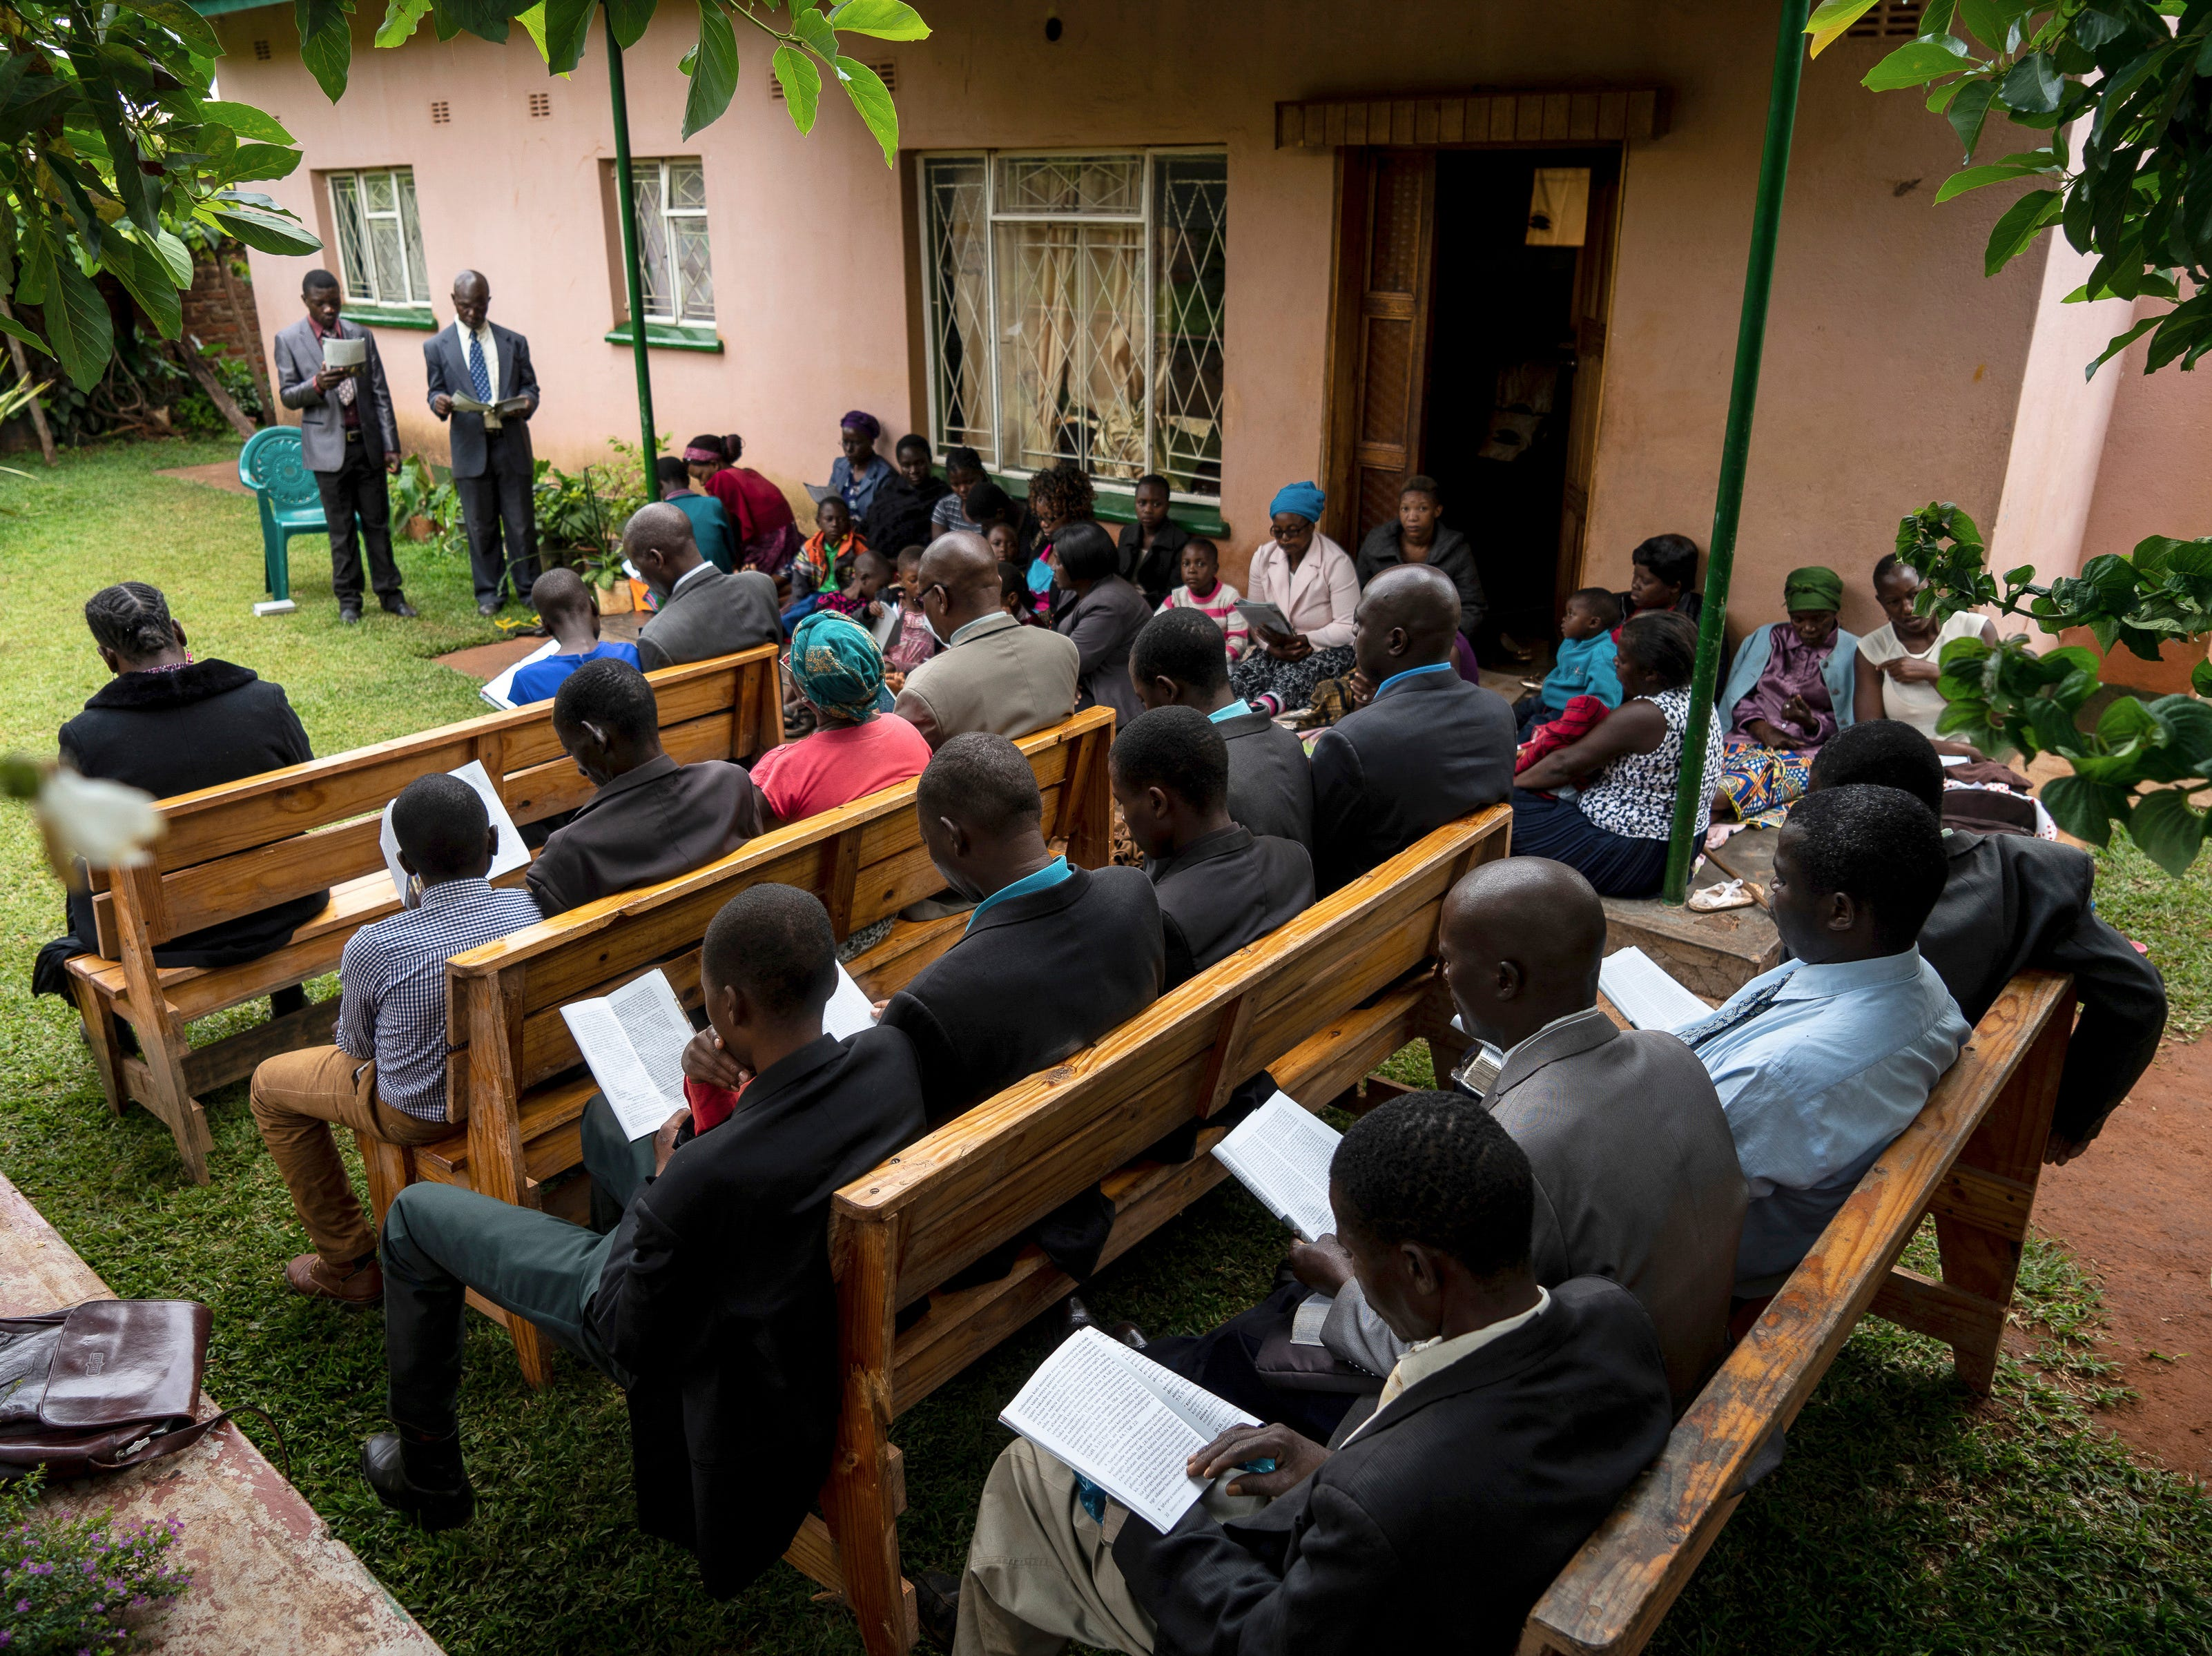 Members of the Jehovah's Witnesses church hold a service at a private home in Chipinge, Zimbabwe Sunday March 24, 2019 after their church building was destroyed by Cyclone Idai. The death toll has risen above 750 in the three southern African countries hit 10 days ago by the storm, as workers restore electricity, water and try to prevent outbreak of cholera, authorities said Sunday.